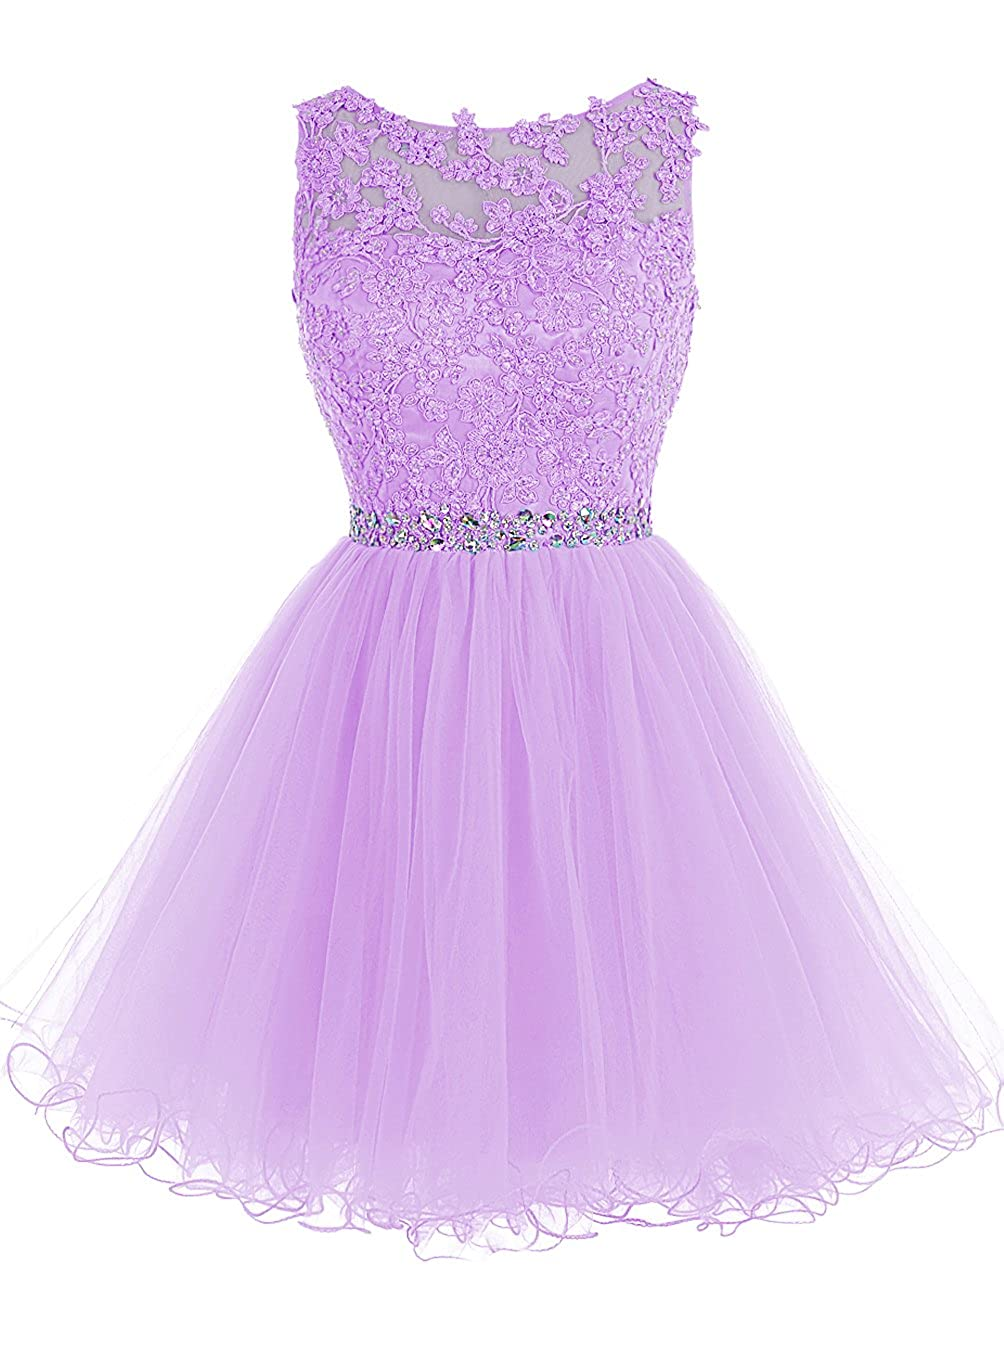 Lavender TideClothes Short Beaded Homecoming Dress Tulle Applique Prom Party Gowns